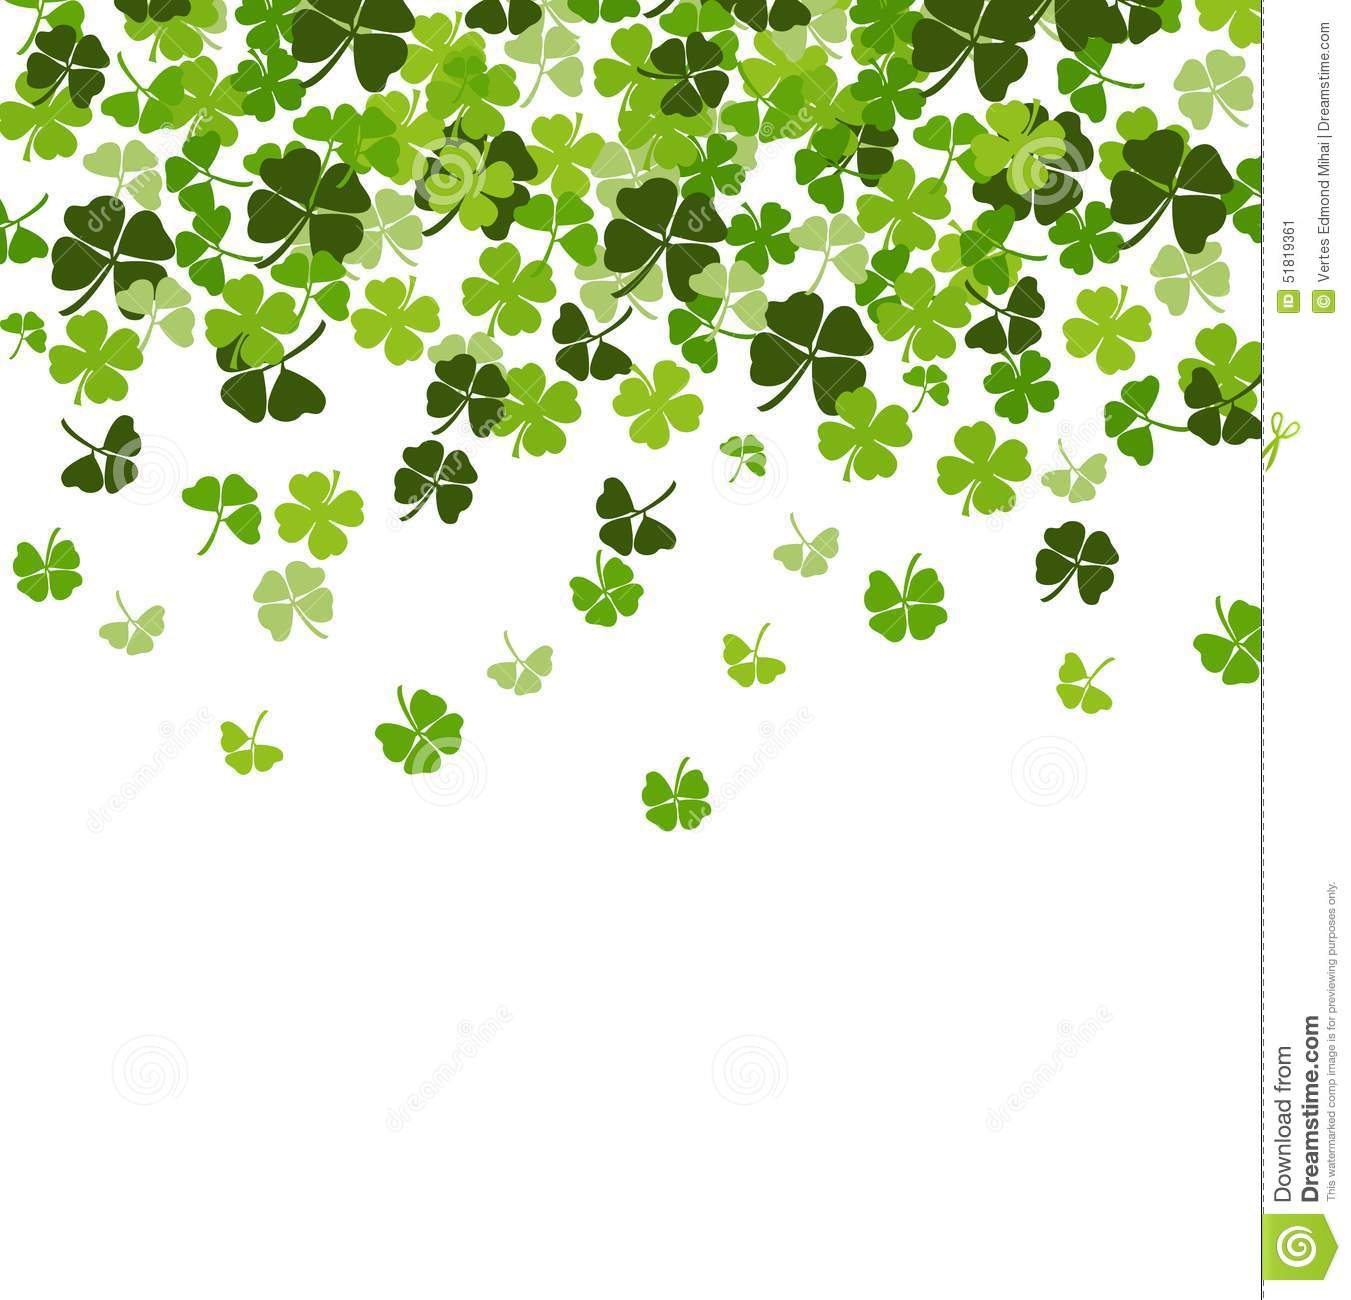 patricks day shamrock background - photo #41